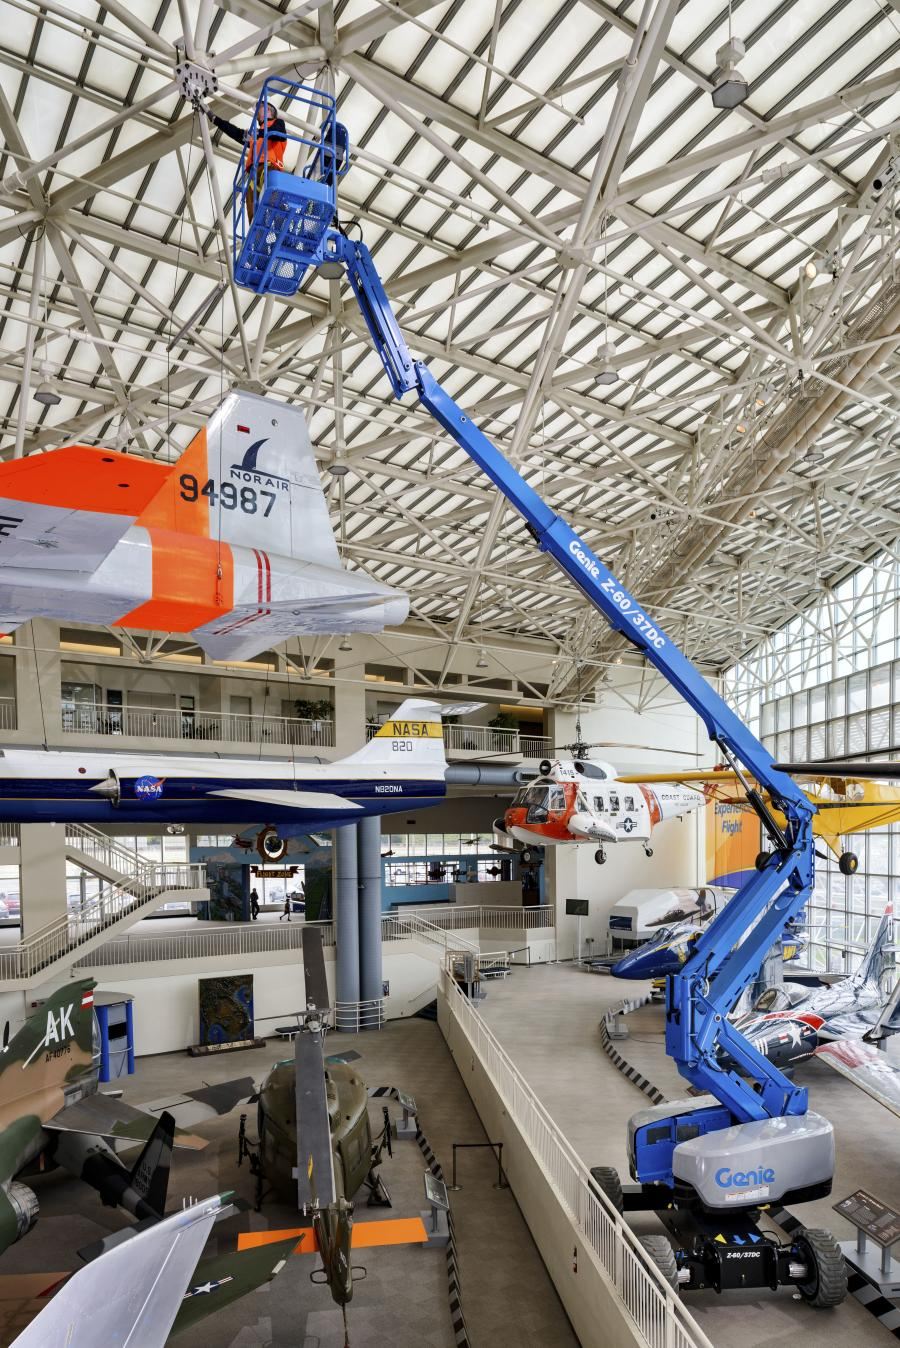 Offering the advantages of zero emissions and full workday operation on just one charge, the new all-electric Genie Z-60/37DC boom is ideal for indoor and outdoor applications, such as industrial plants, malls, convention centers and construction sites.